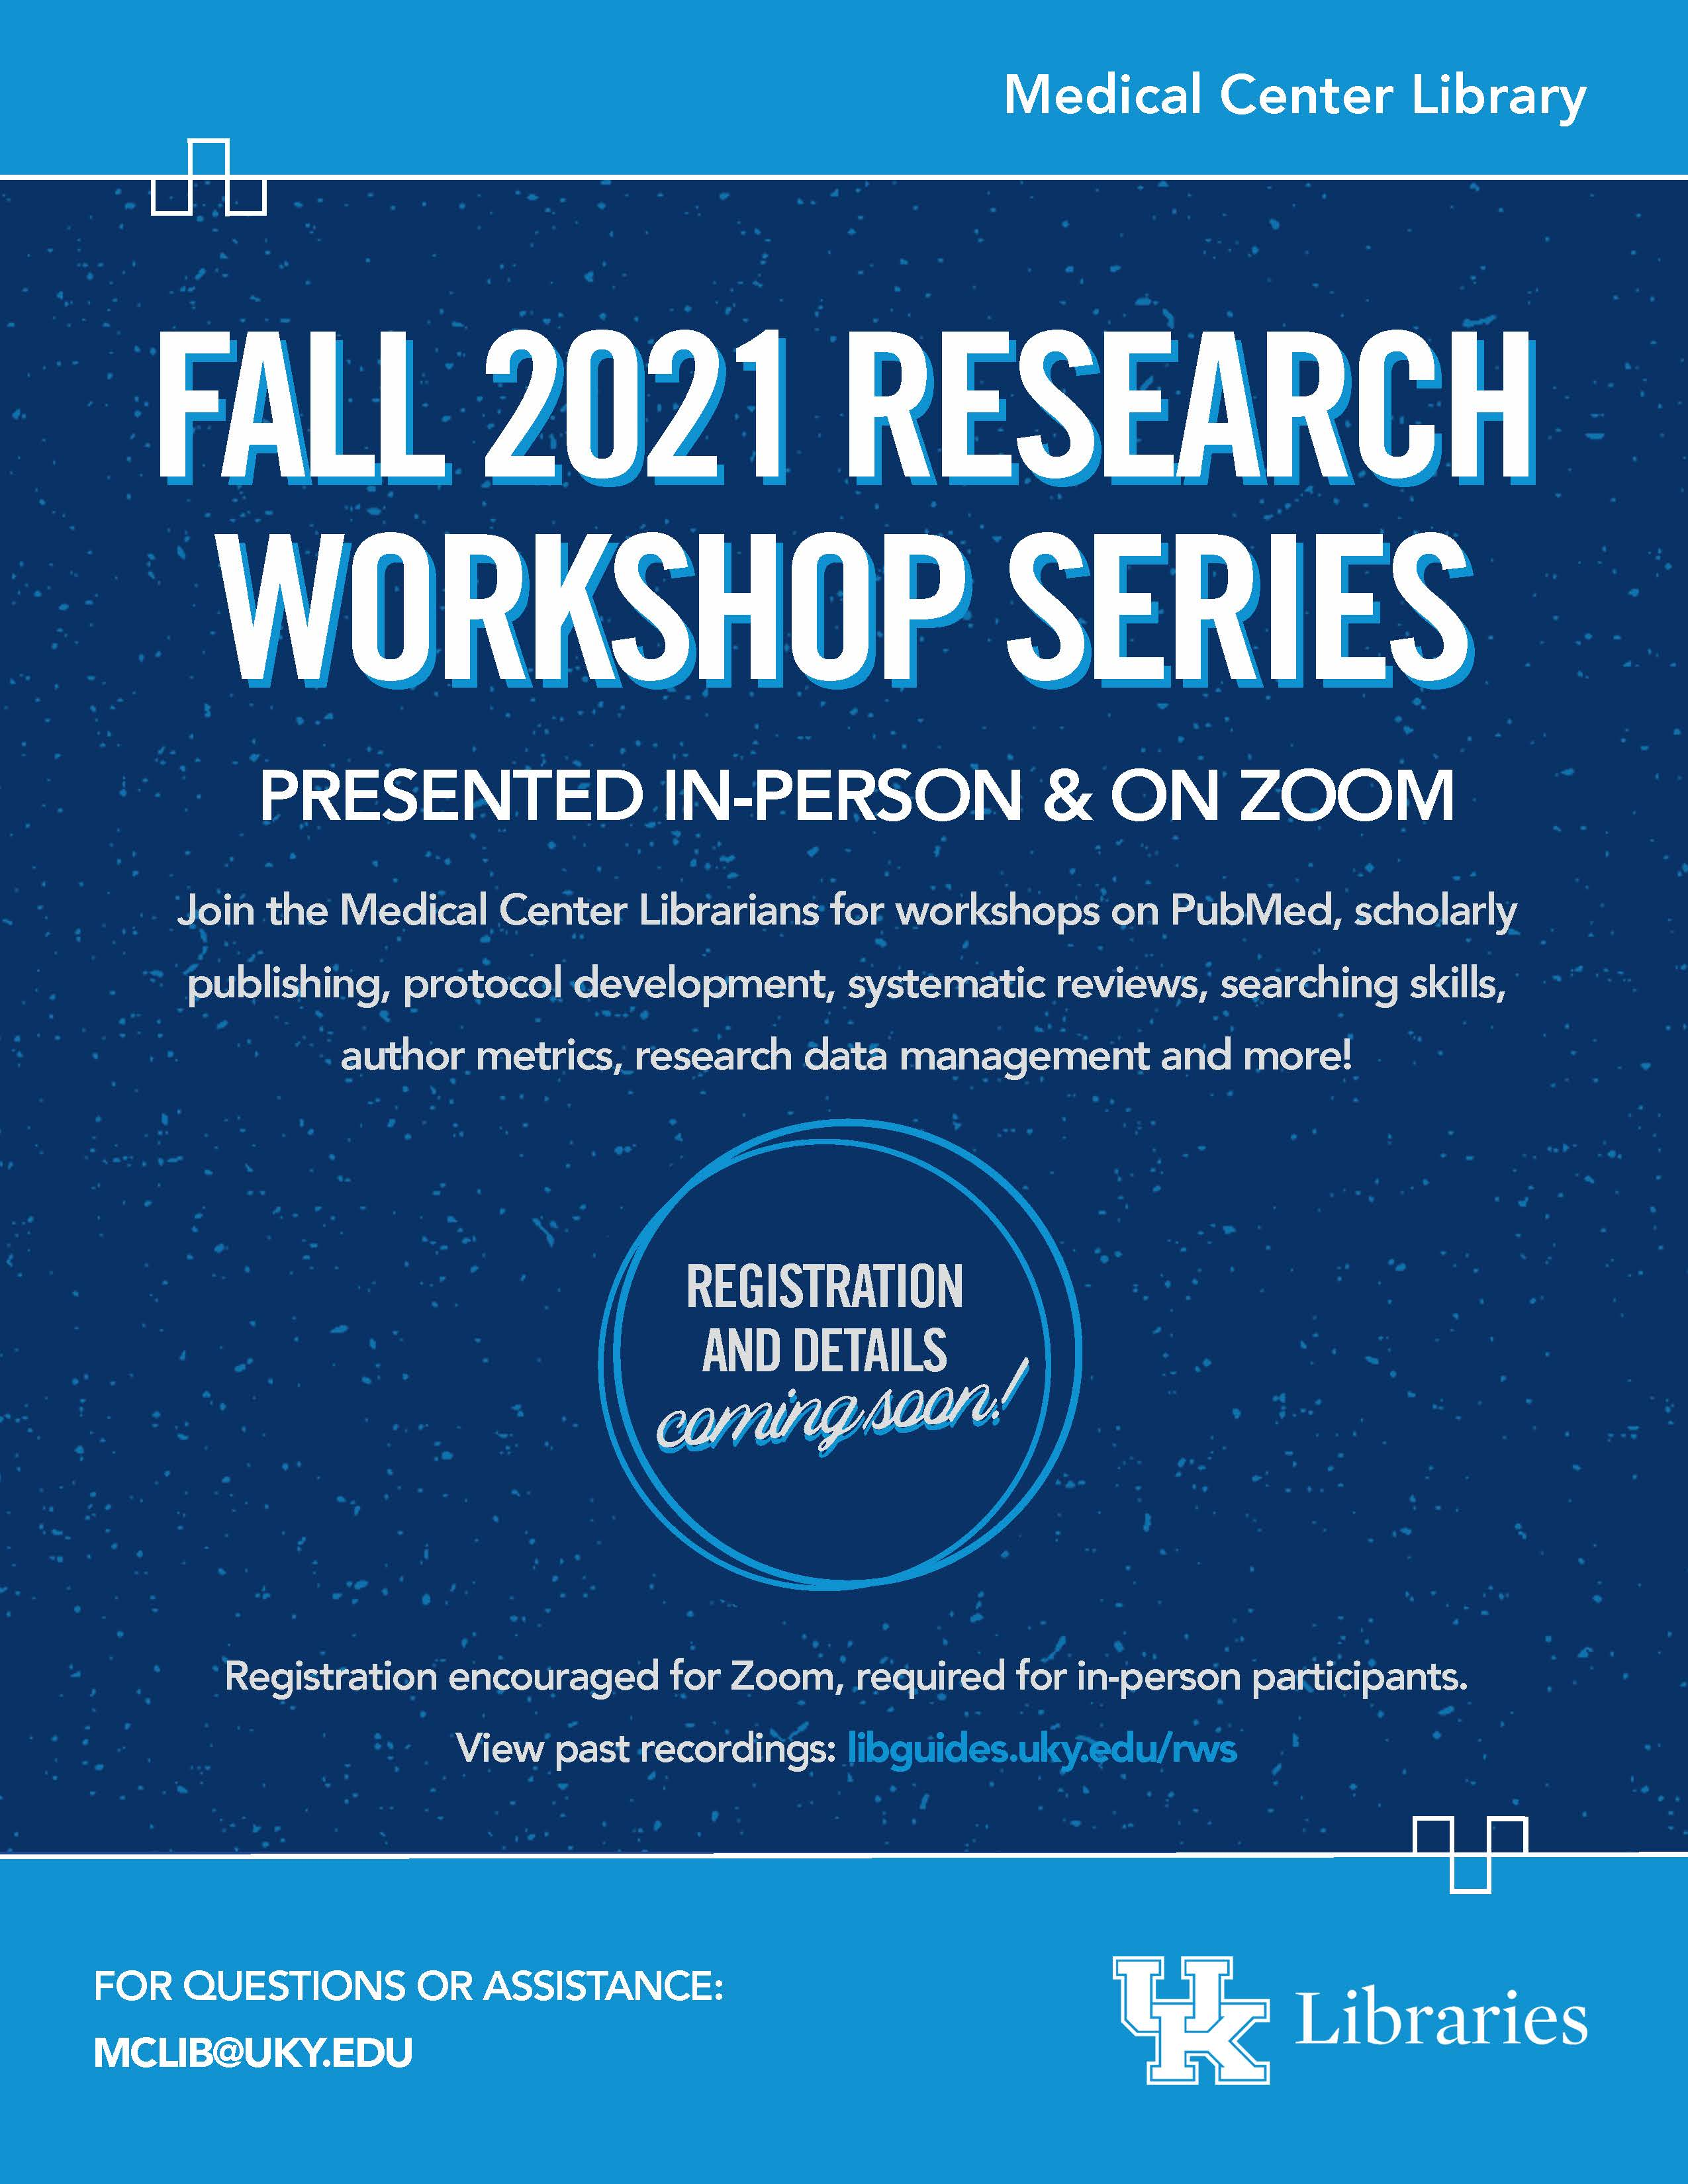 Research Workshop Series Flyer